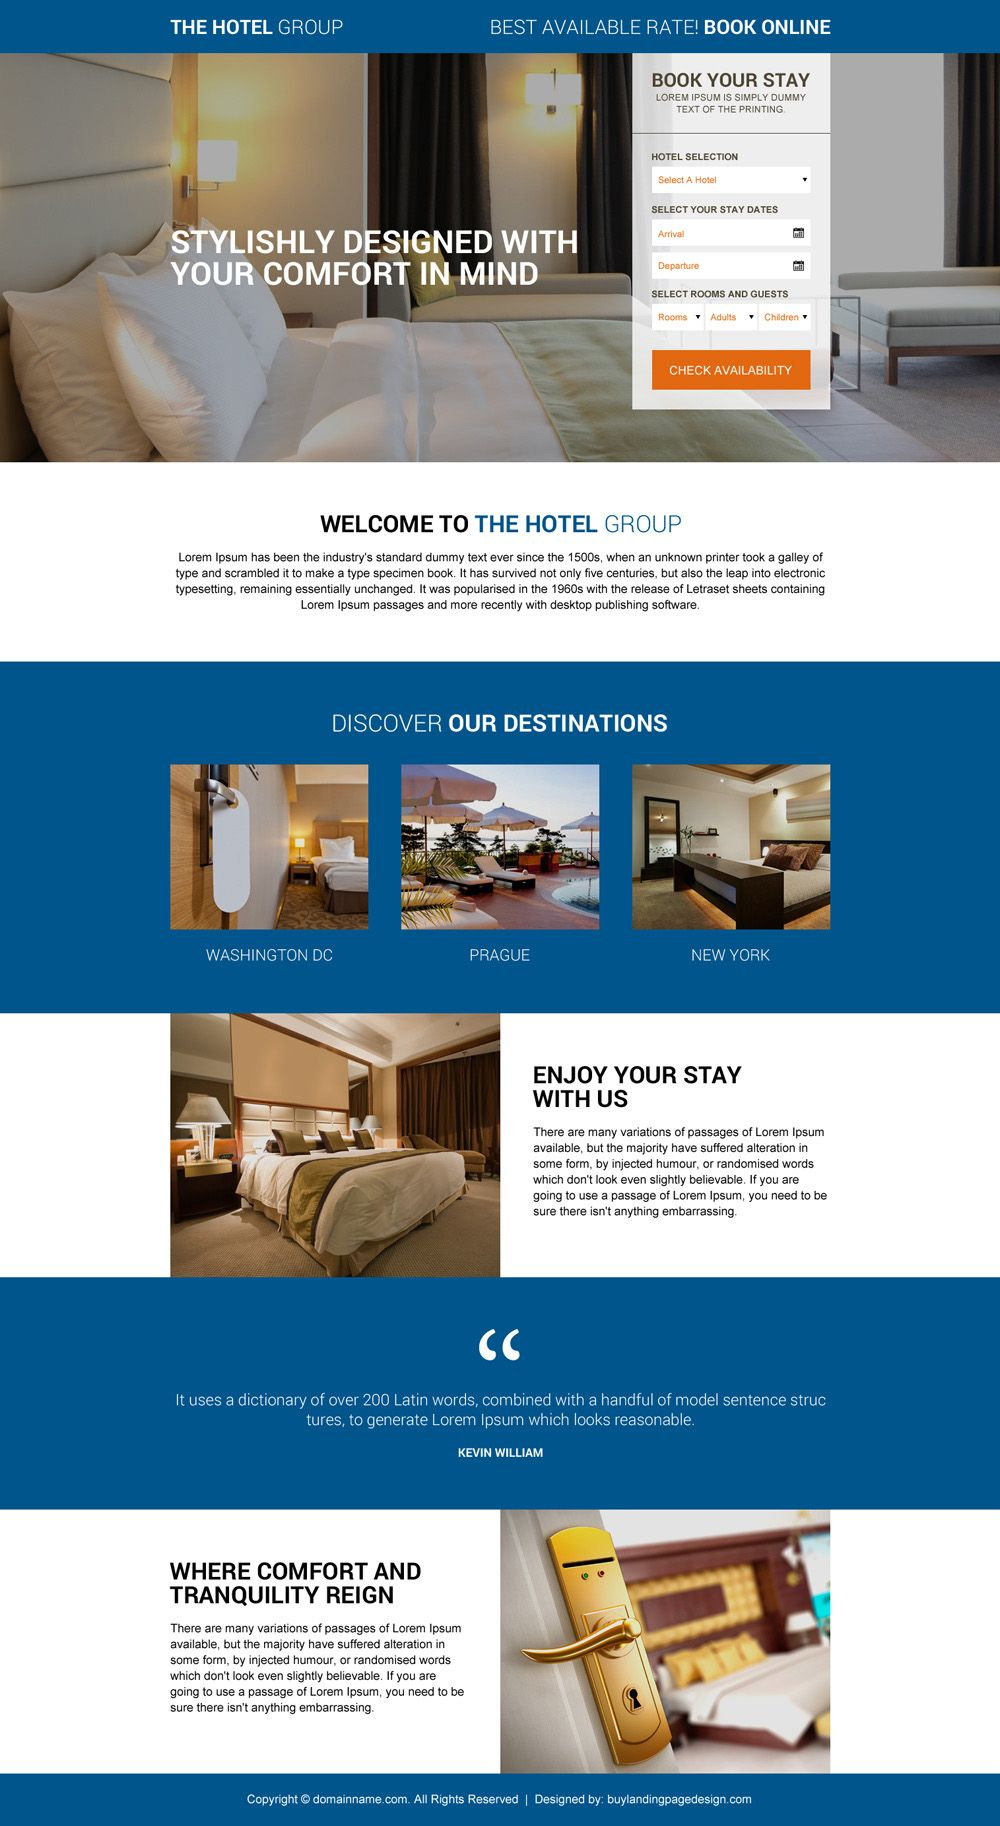 Download Online Hotel Booking Responsive Landing Page Design At An